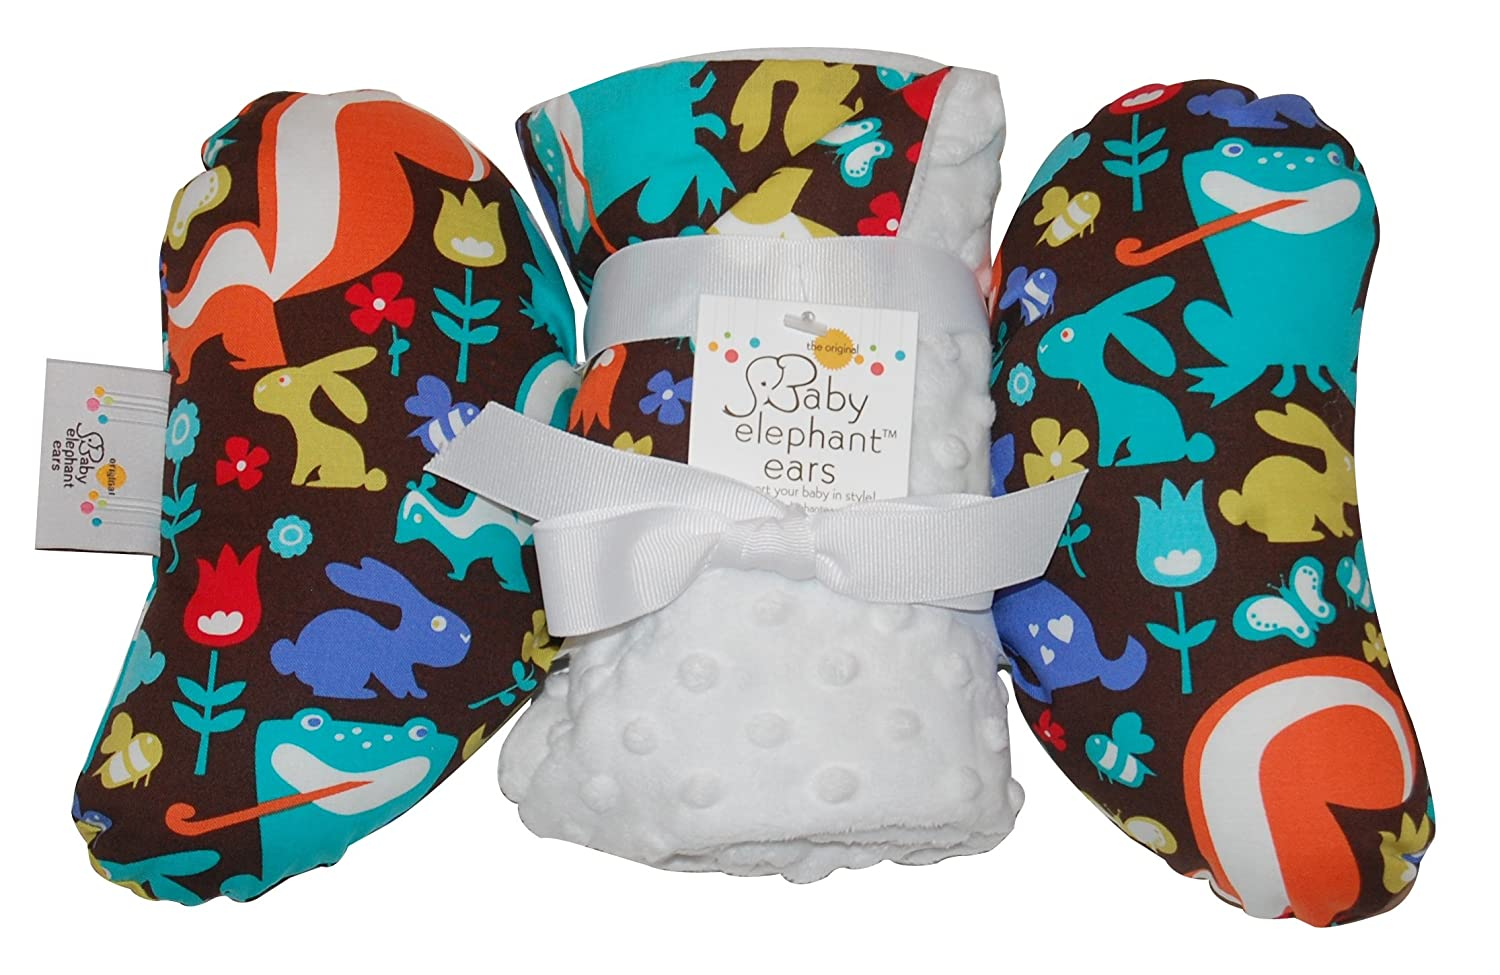 Baby Elephant Ears Head Support Pillow & Matching Blanket Gift Set (Grass Menagerie) by Baby Elephant Ears   B0085X1SZA